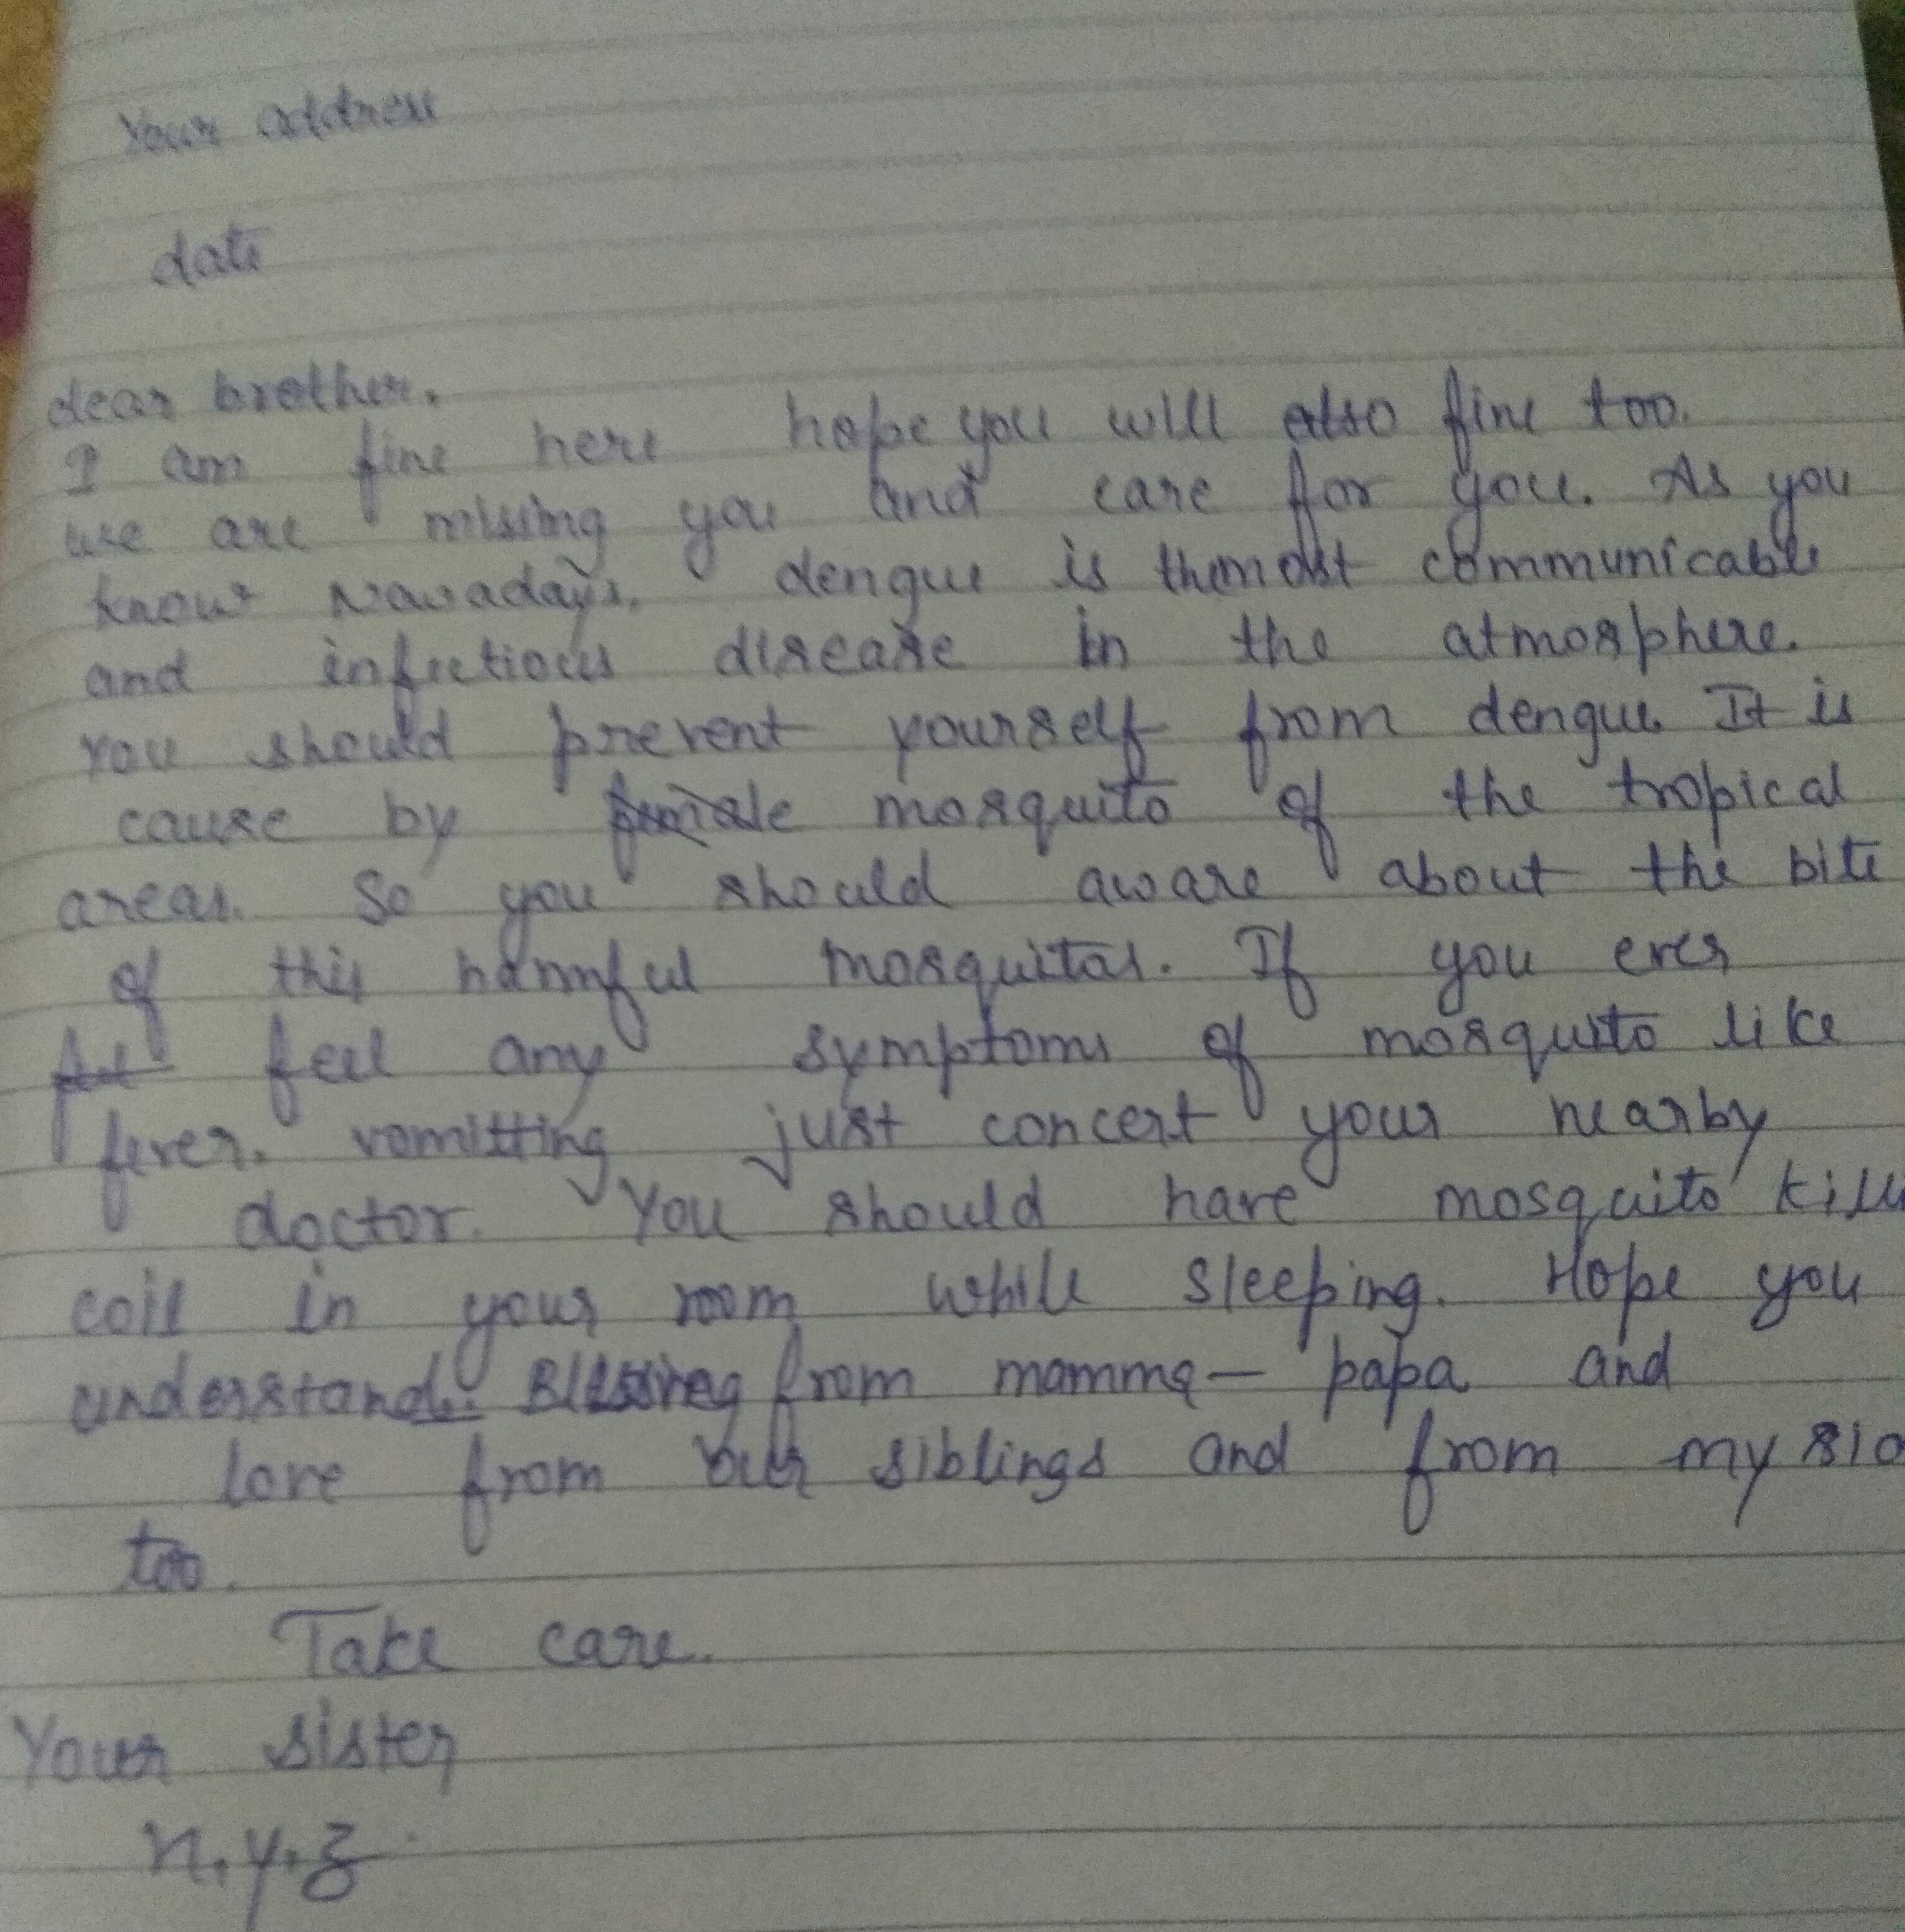 Write A Letter To Your Younger Brother Living In Hostel In Mumbai